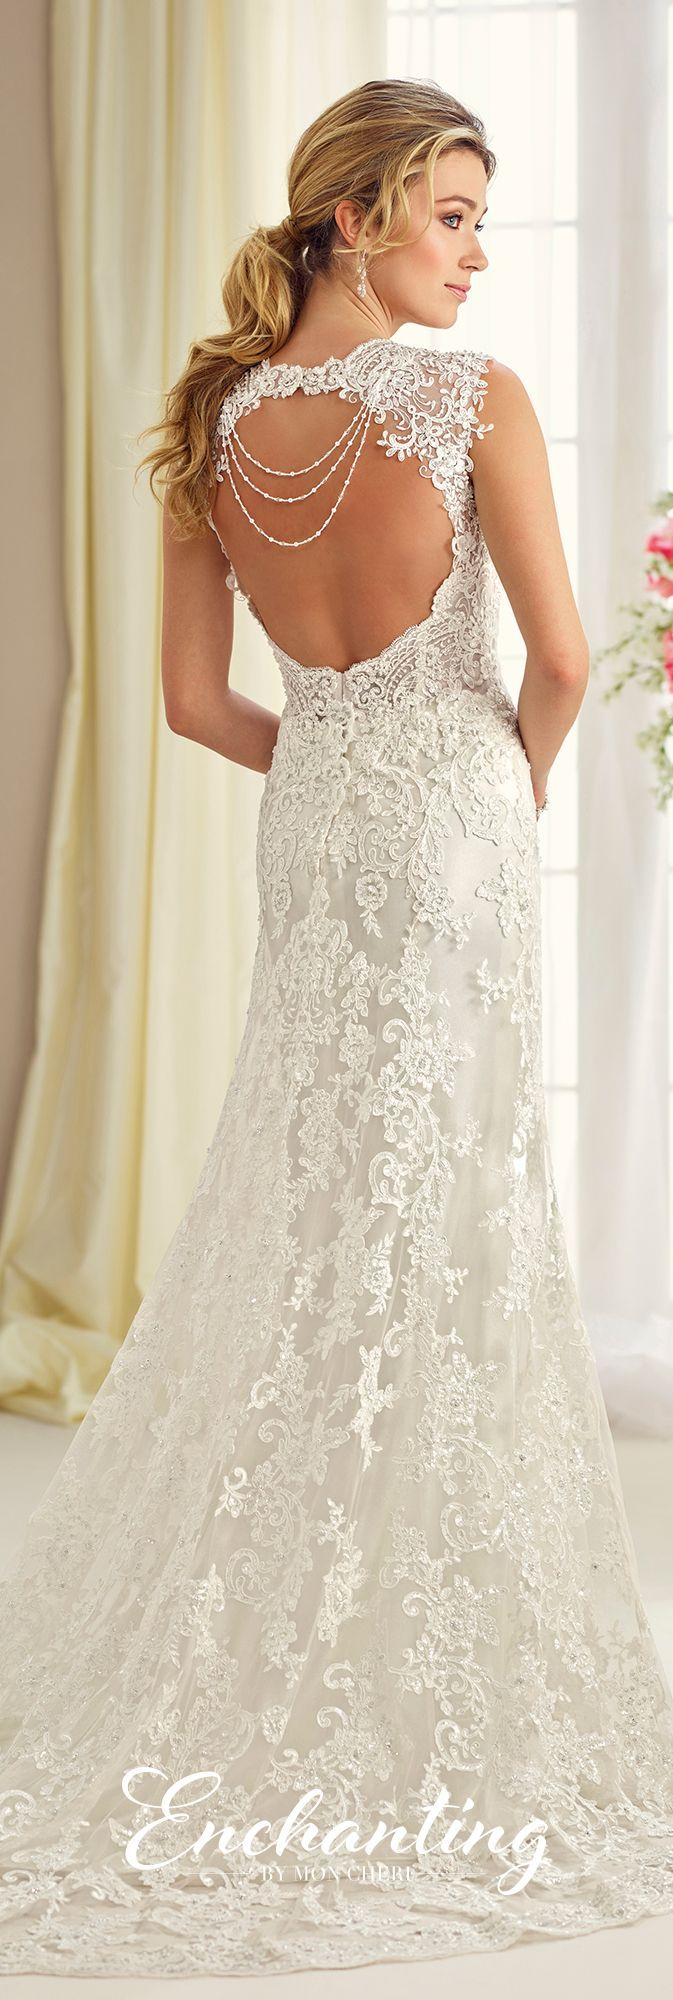 Enchanting by Mon Cheri Fall 2017 Collection - Style 217116 - sleeveless lace fit and flare wedding dress with Queen Anne neckline and keyhole back